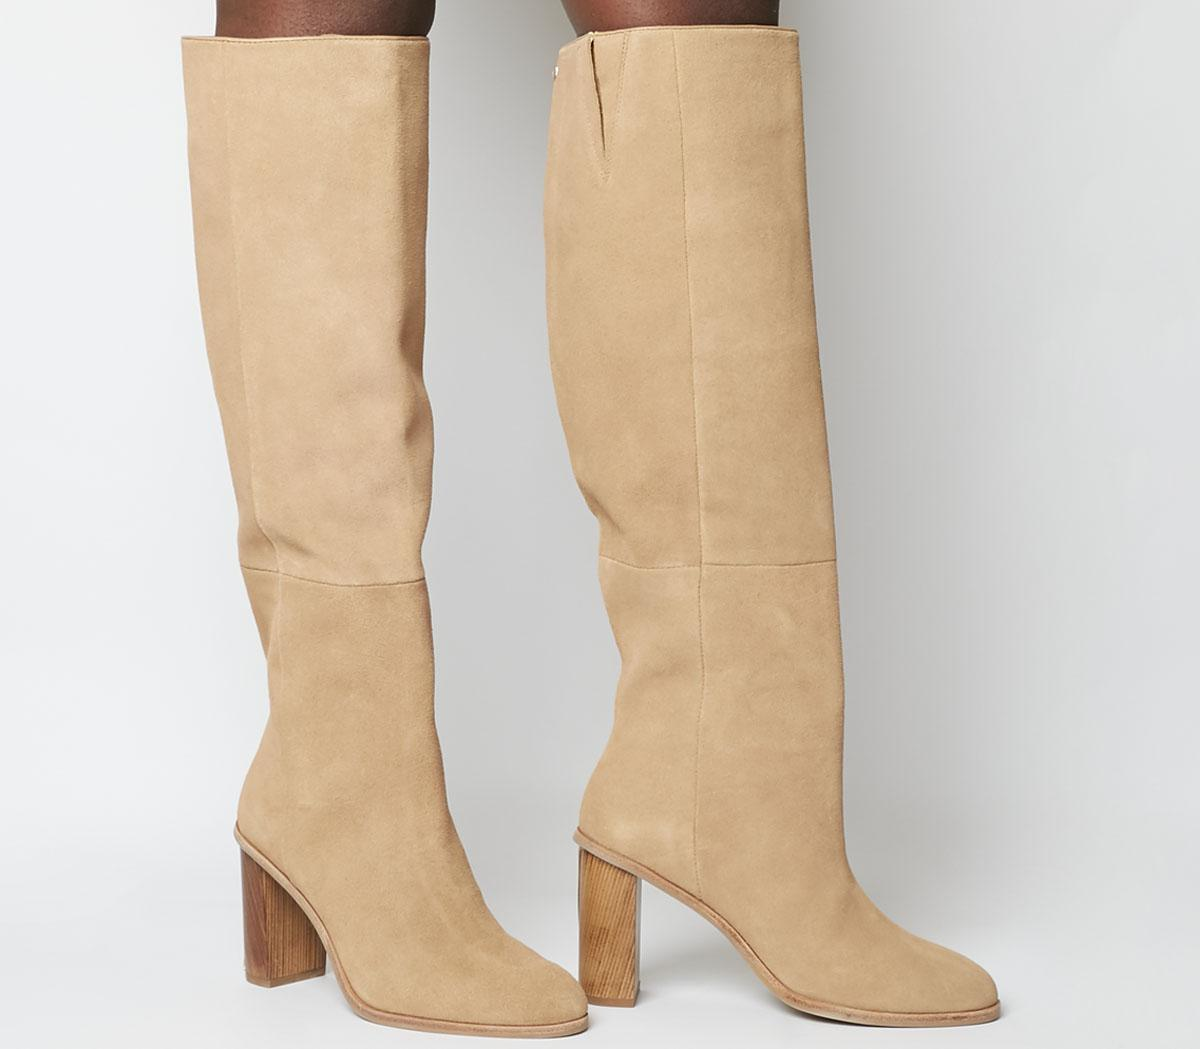 Dolare Knee High Boots